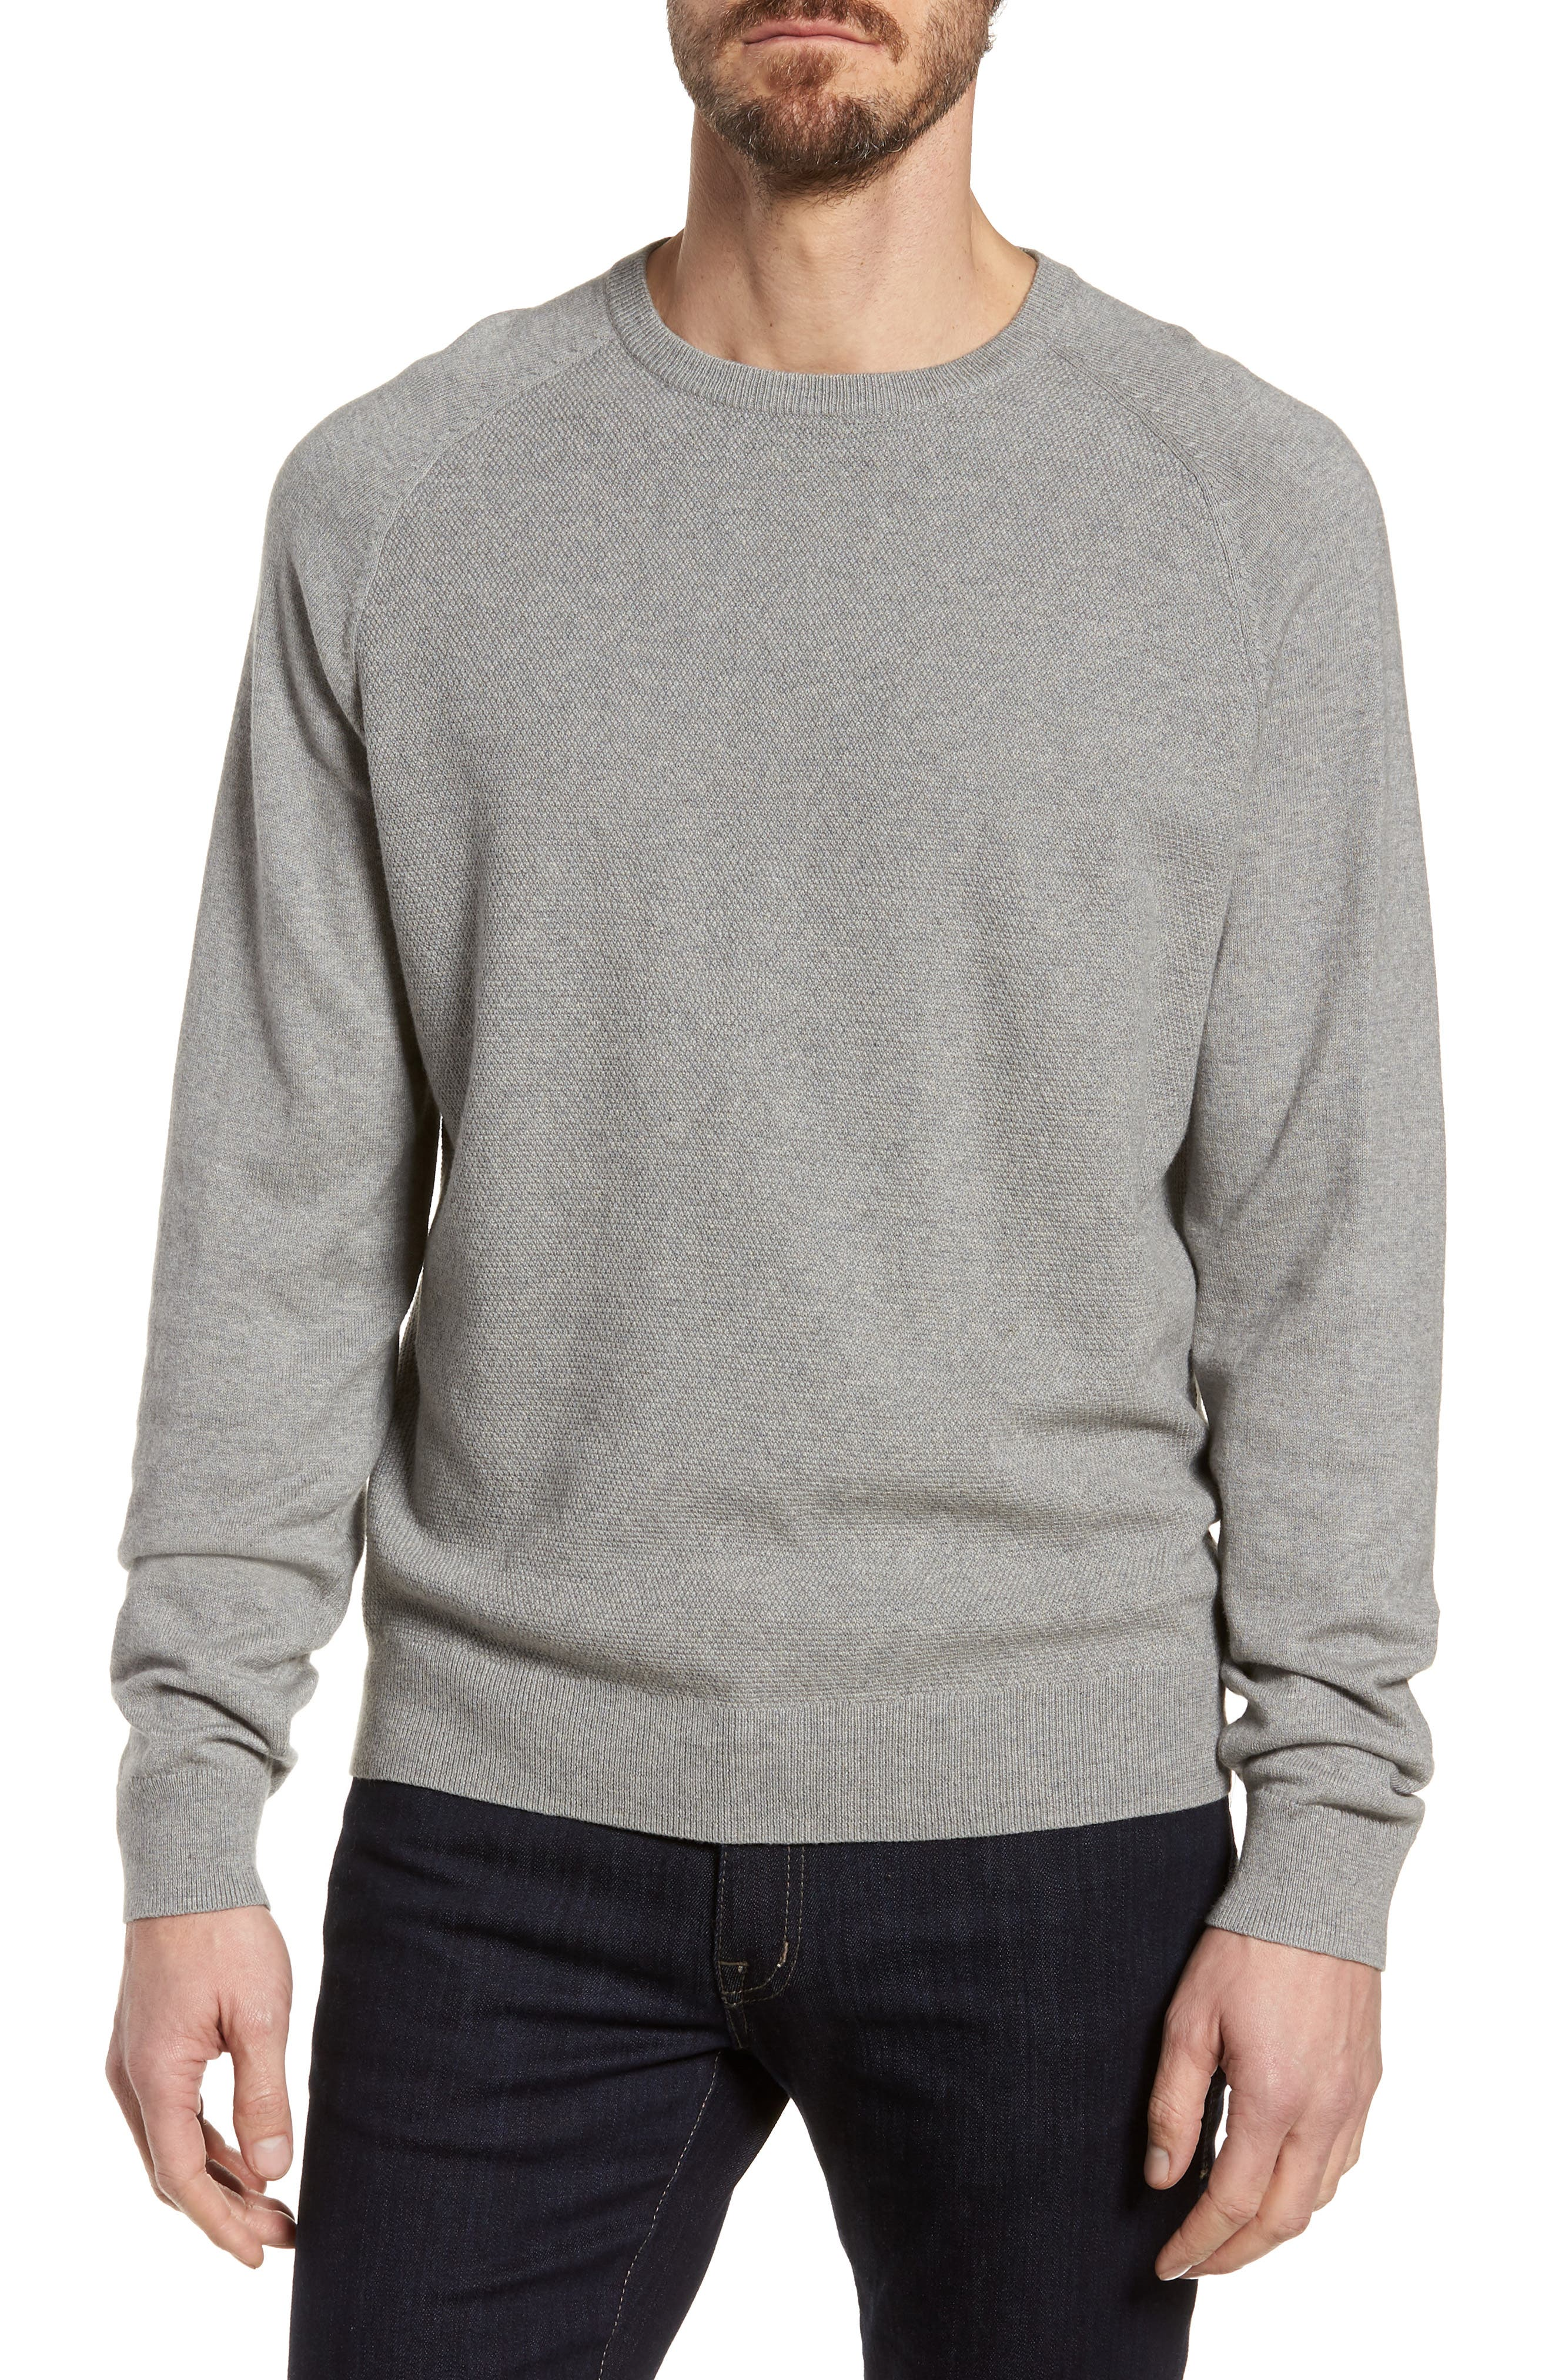 Nordstrom Men's Shop Crewneck Cotton & Cashmere Sweater